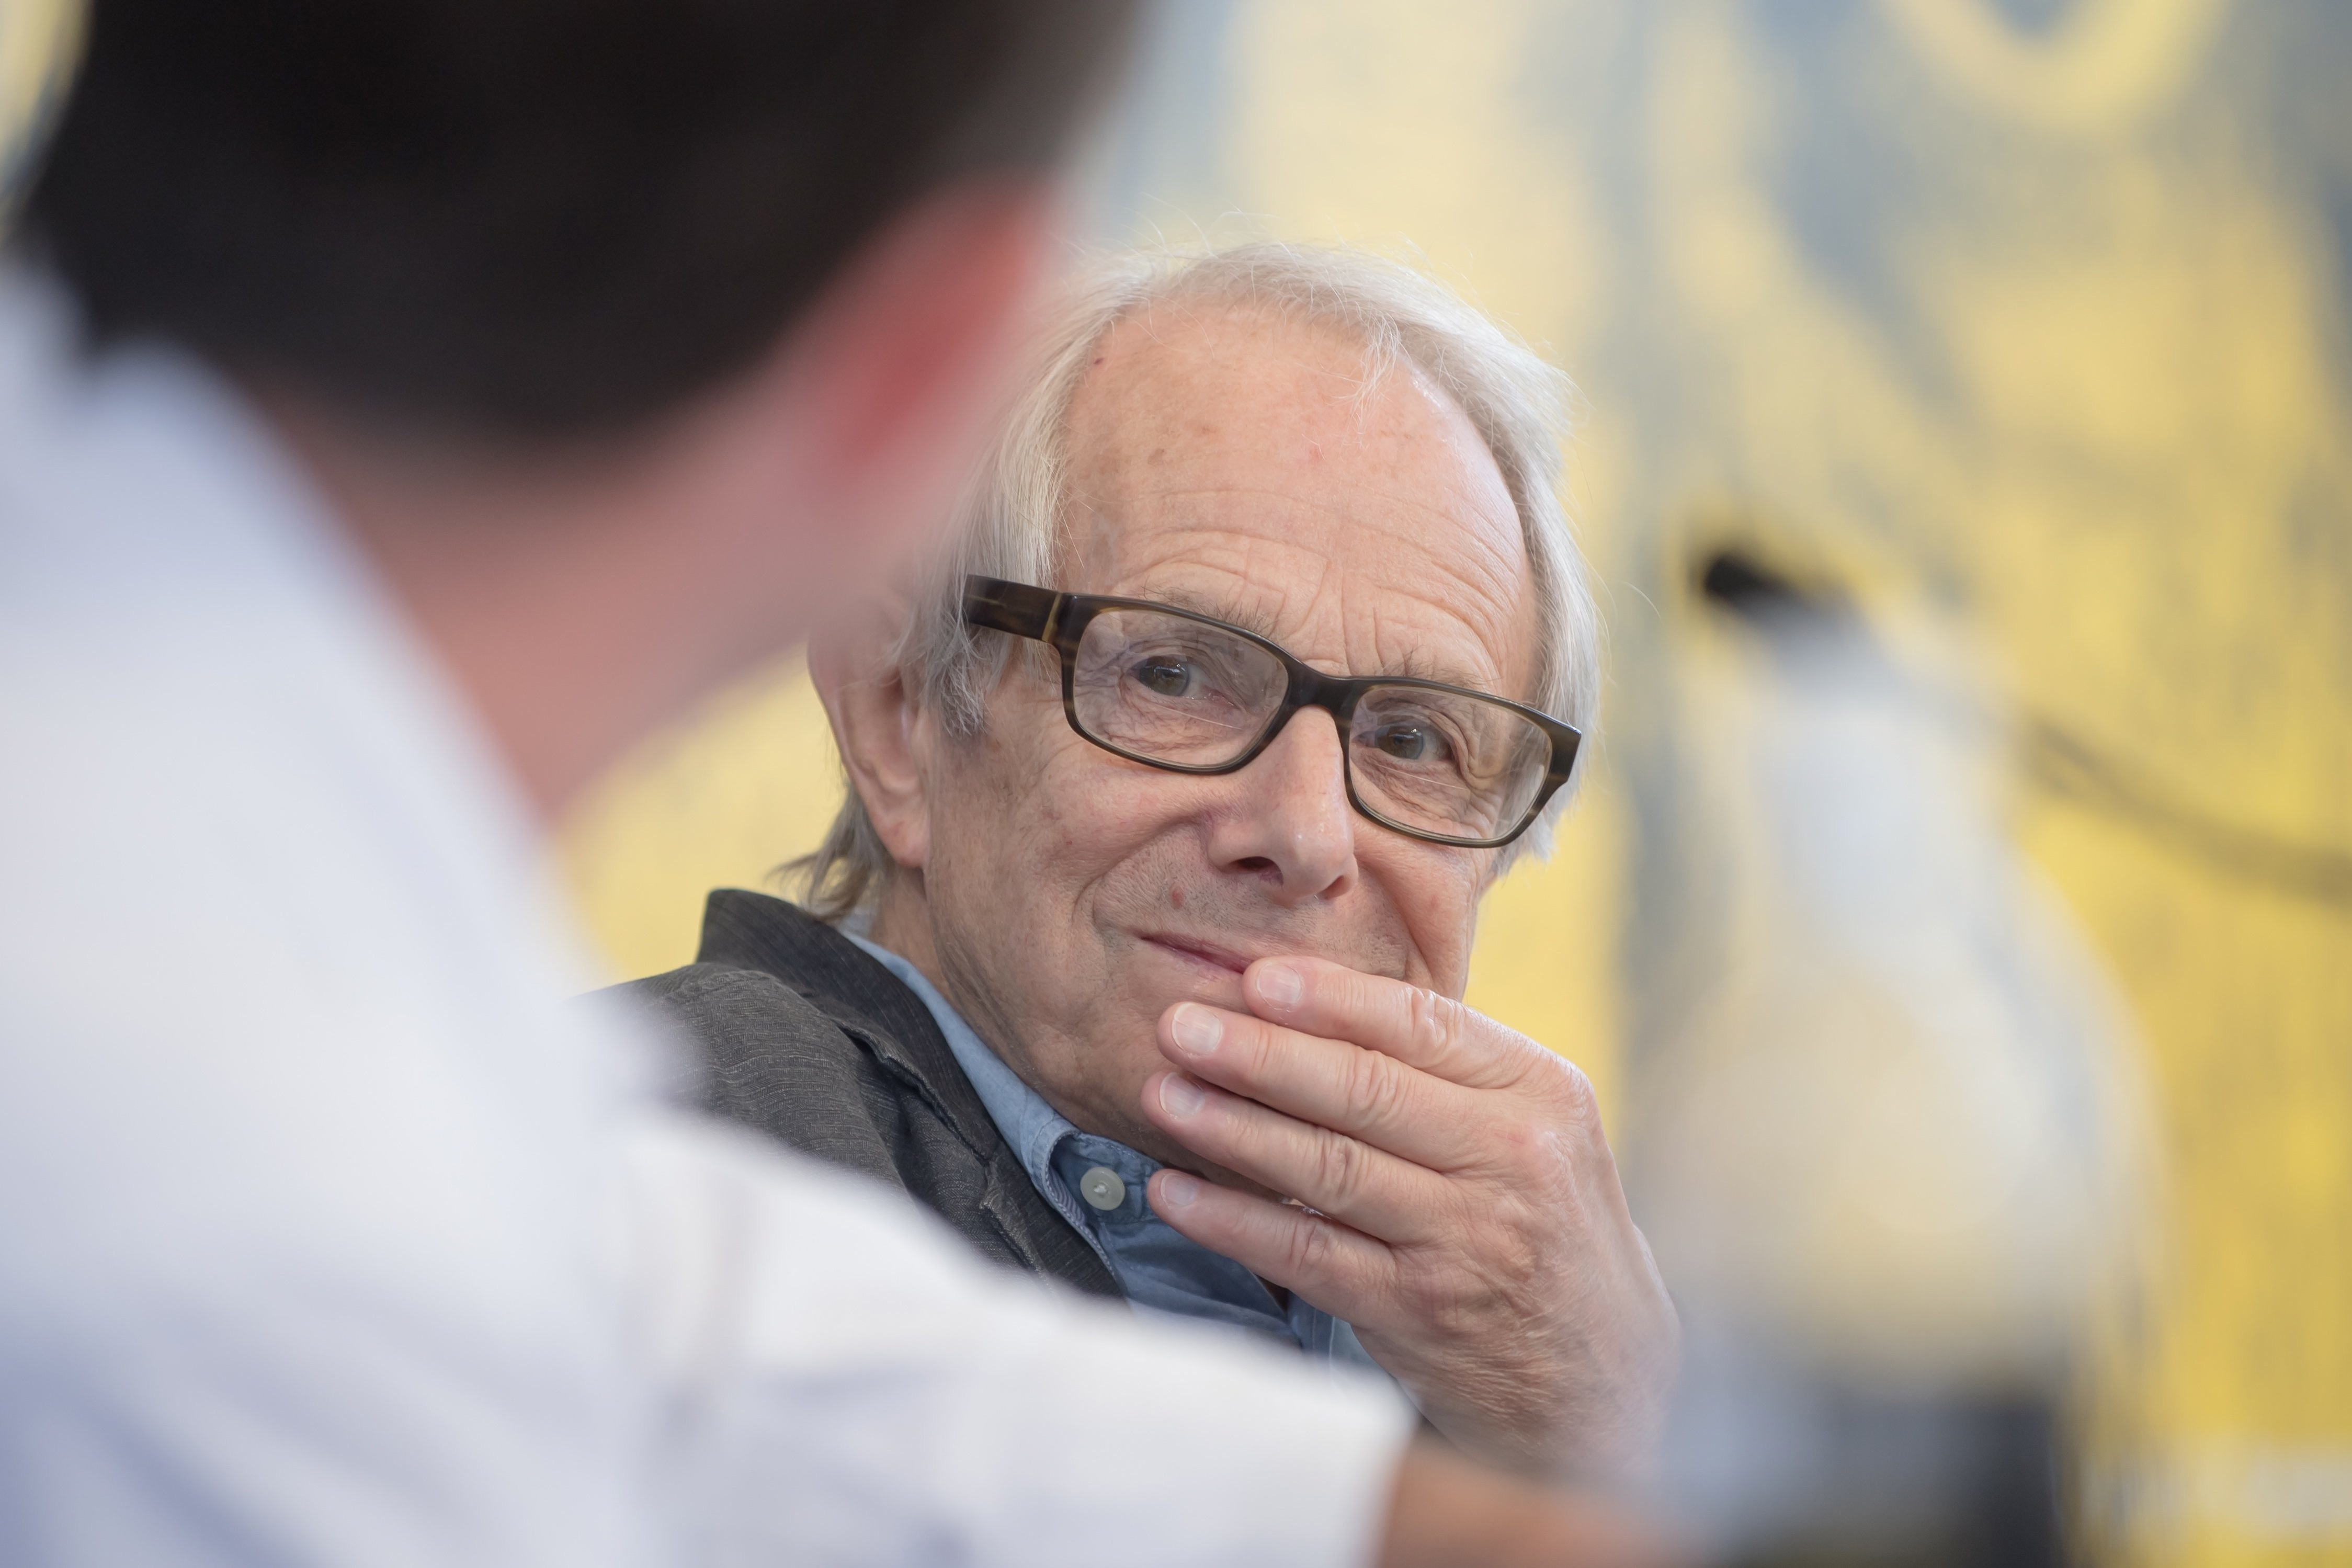 Hope lives through struggle: Ken Loach and « I, Daniel Blake » celebrated in Locarno